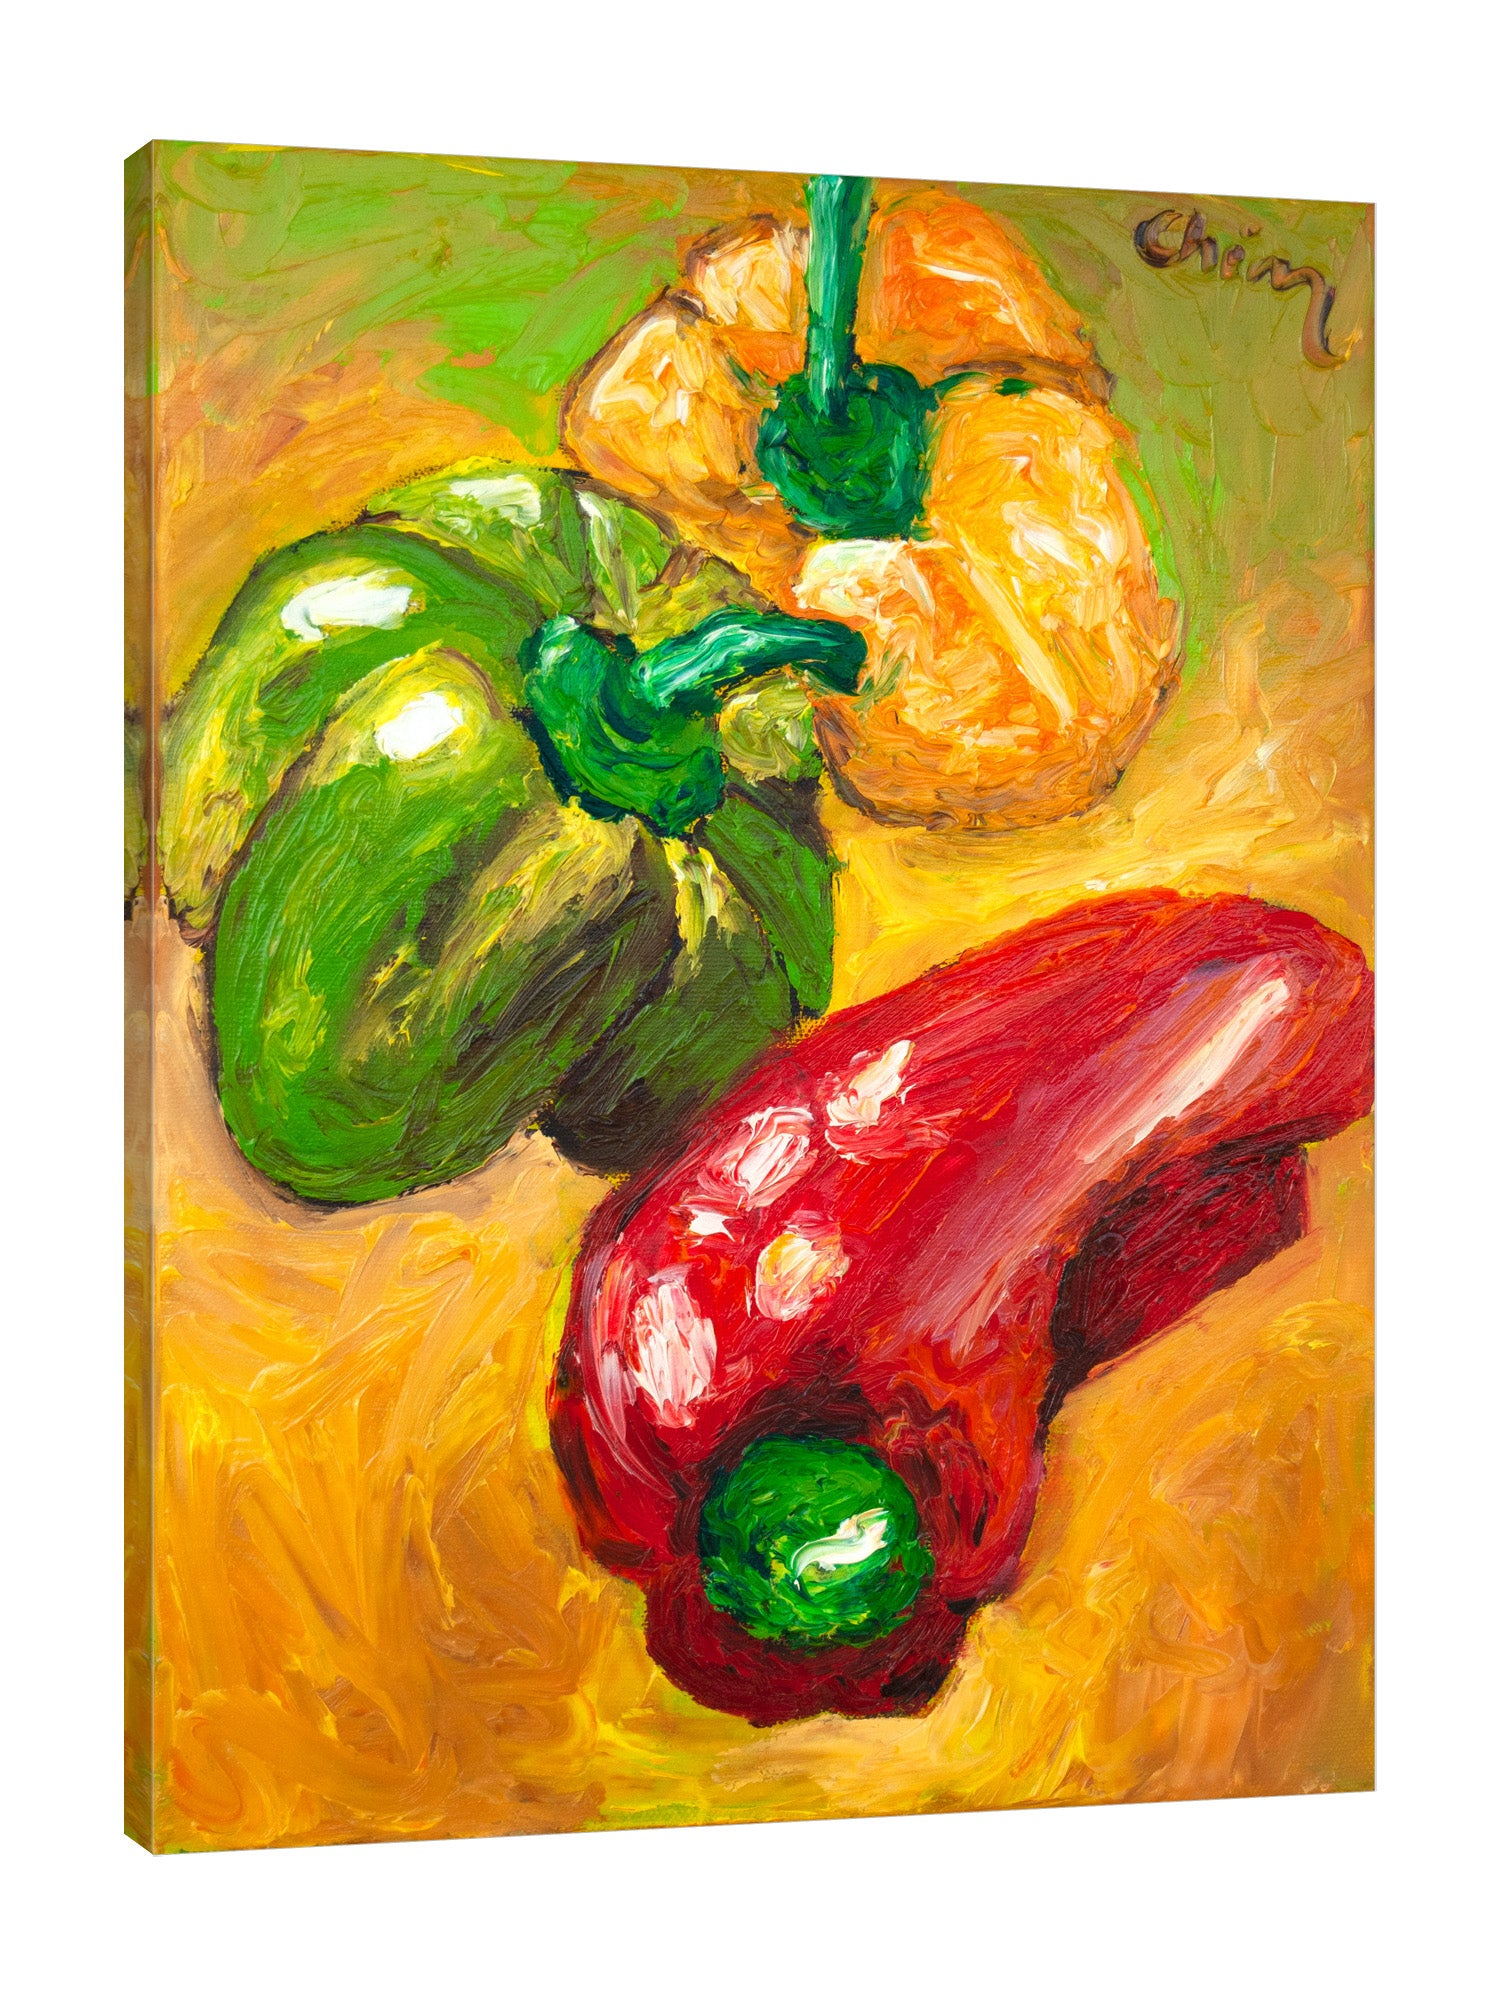 Chiara-Magni,Modern & Contemporary,Food & Beverage,Finger-paint,food,vegetable,peppers,pepper,red,yellow,green,